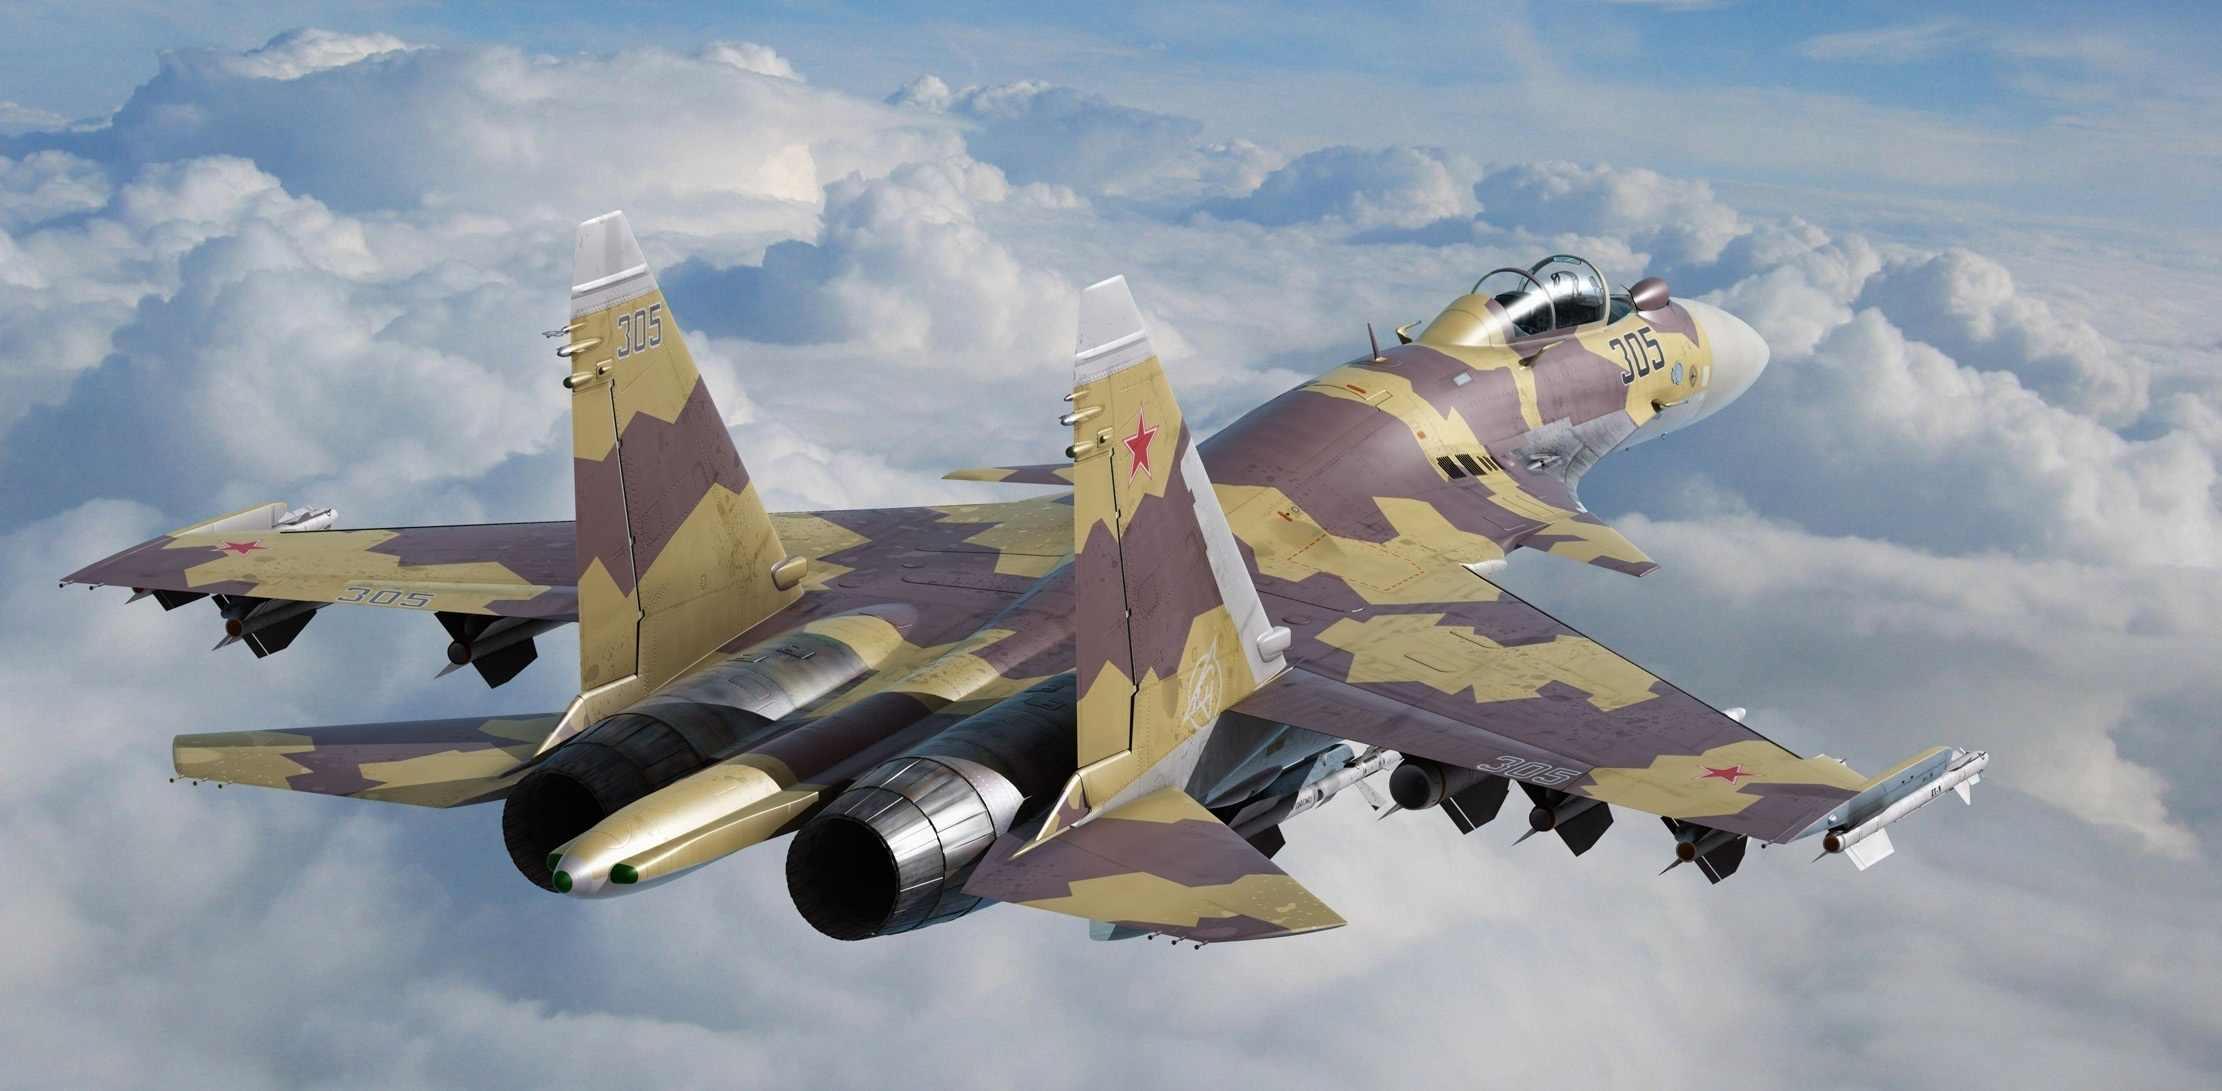 Su 35 fighter jets airplane military wallpaper background 2222x1091